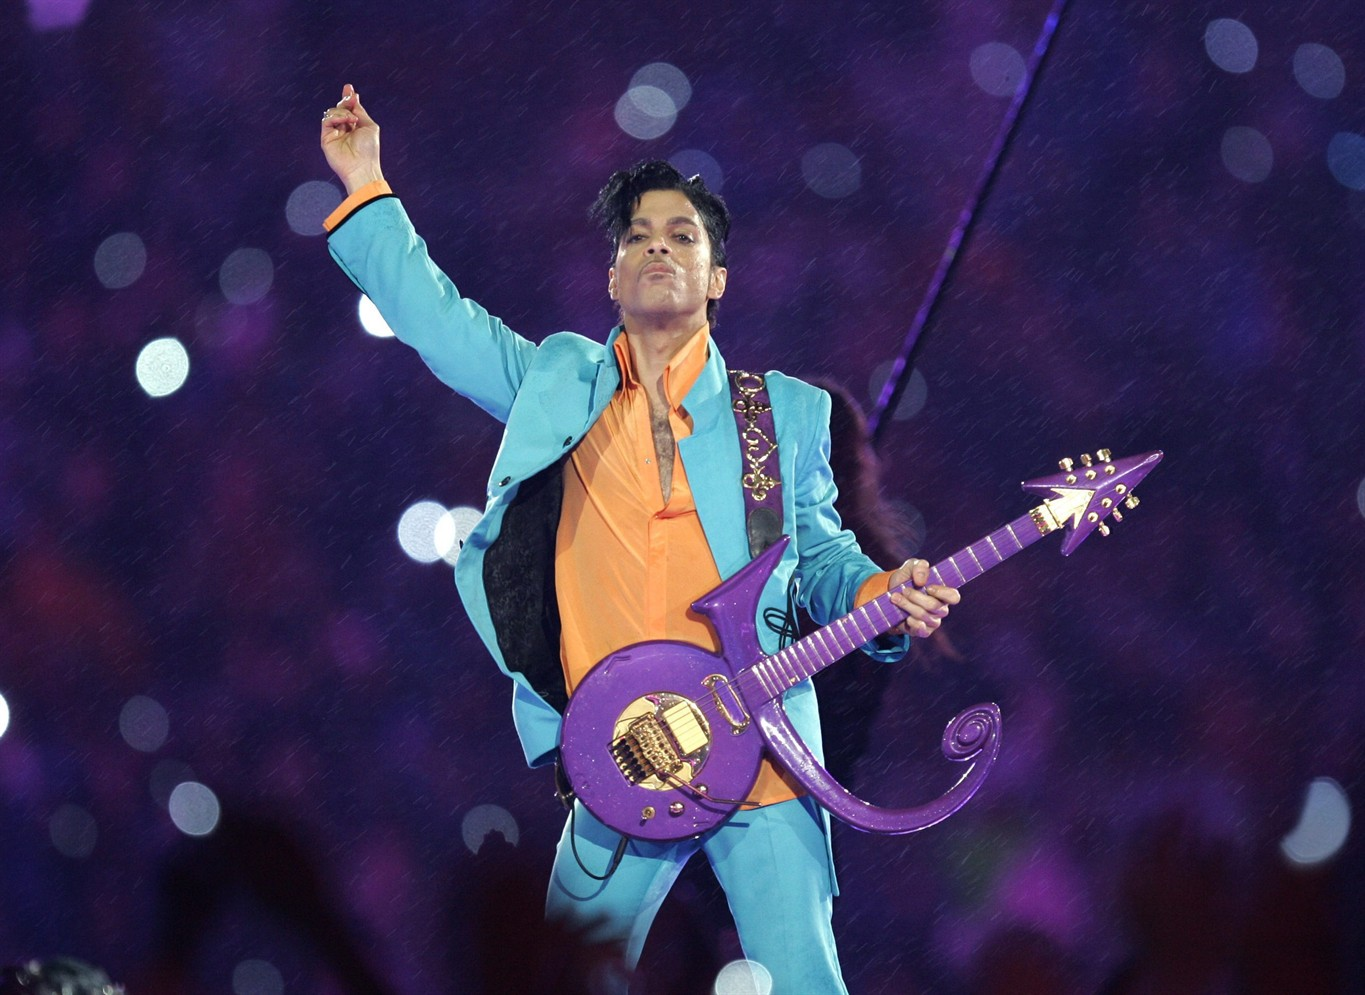 Powerful pills found in Prince's home 'were mislabelled', investigators say